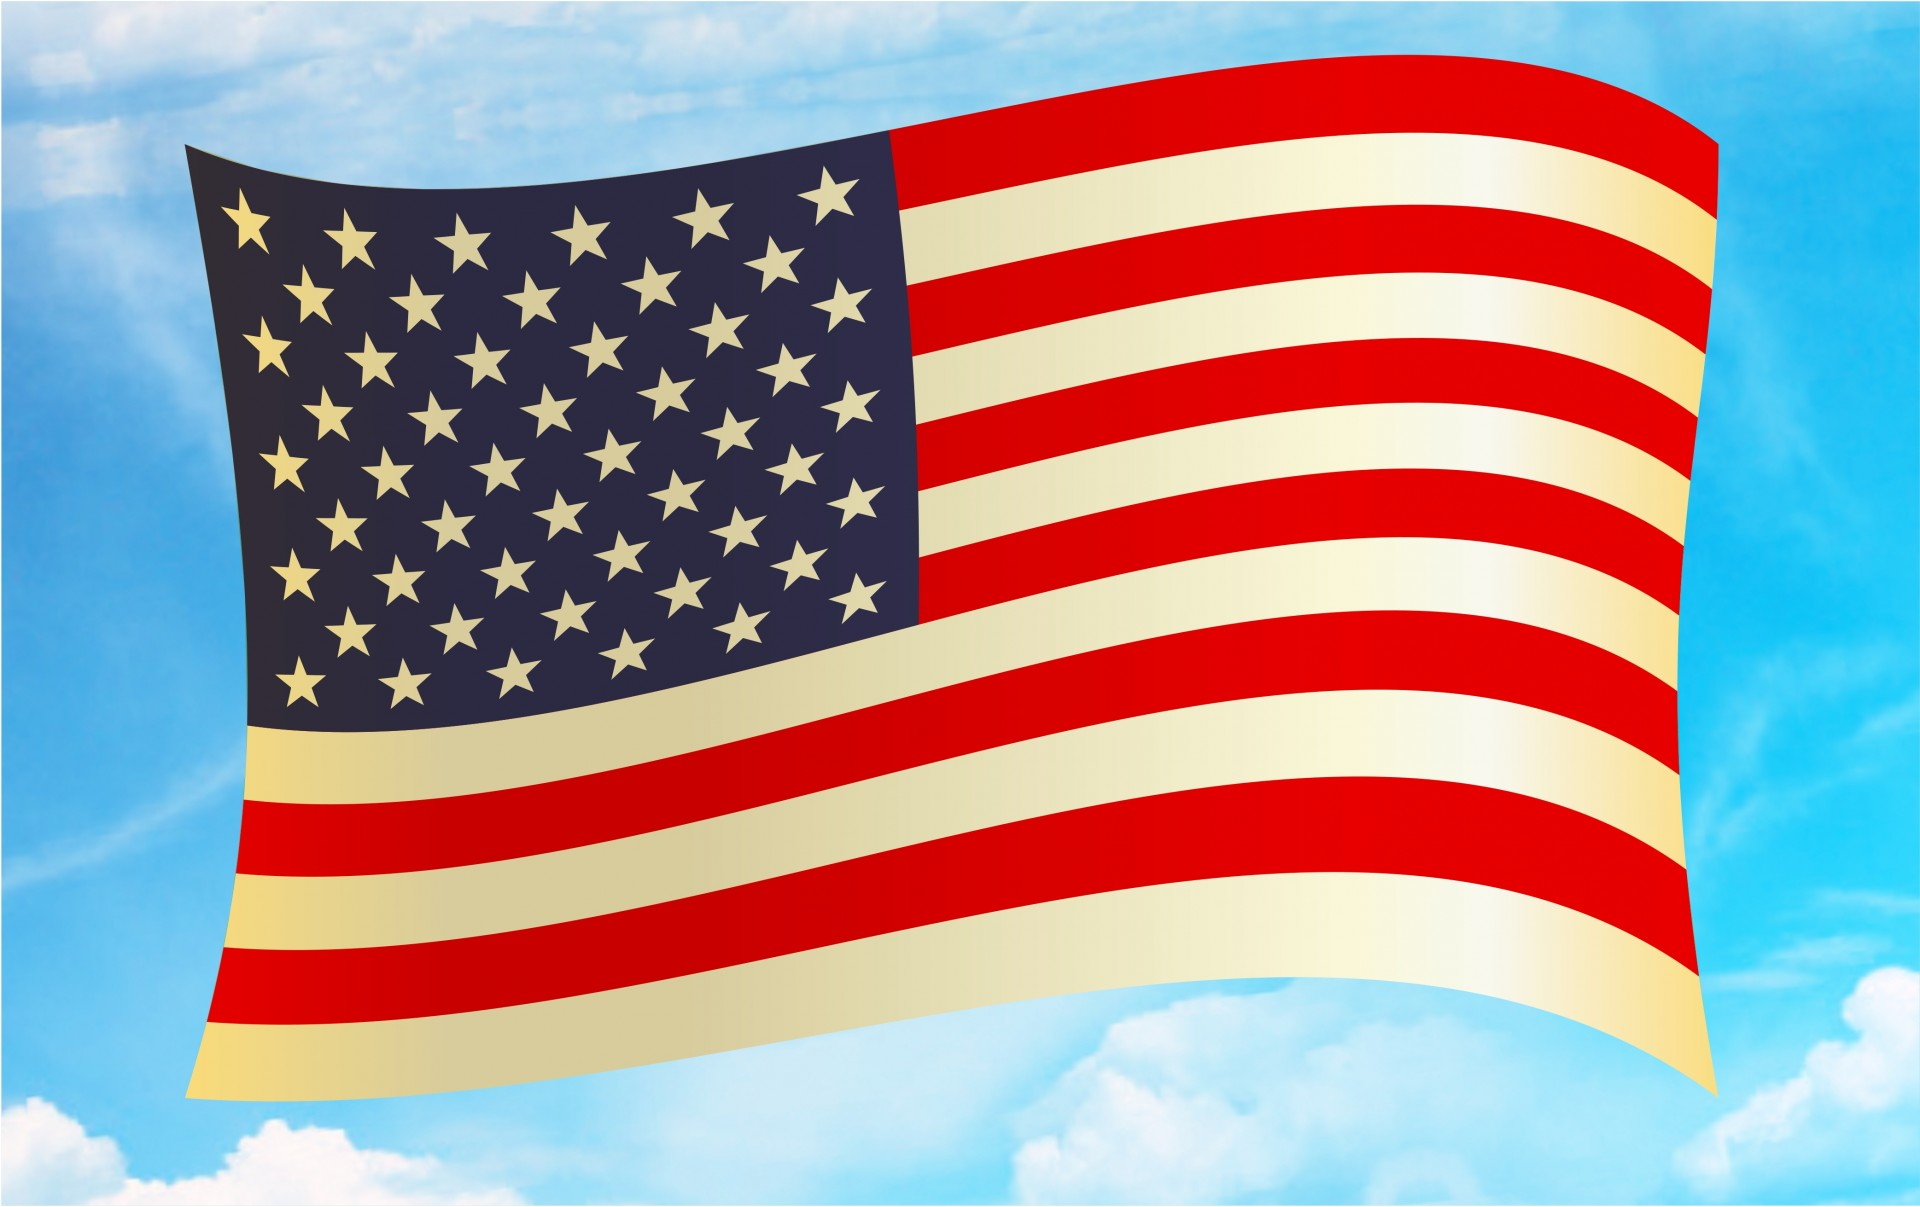 United states flag clipart free transparent stock American Flag Clipart Free Stock Photo - Public Domain Pictures transparent stock